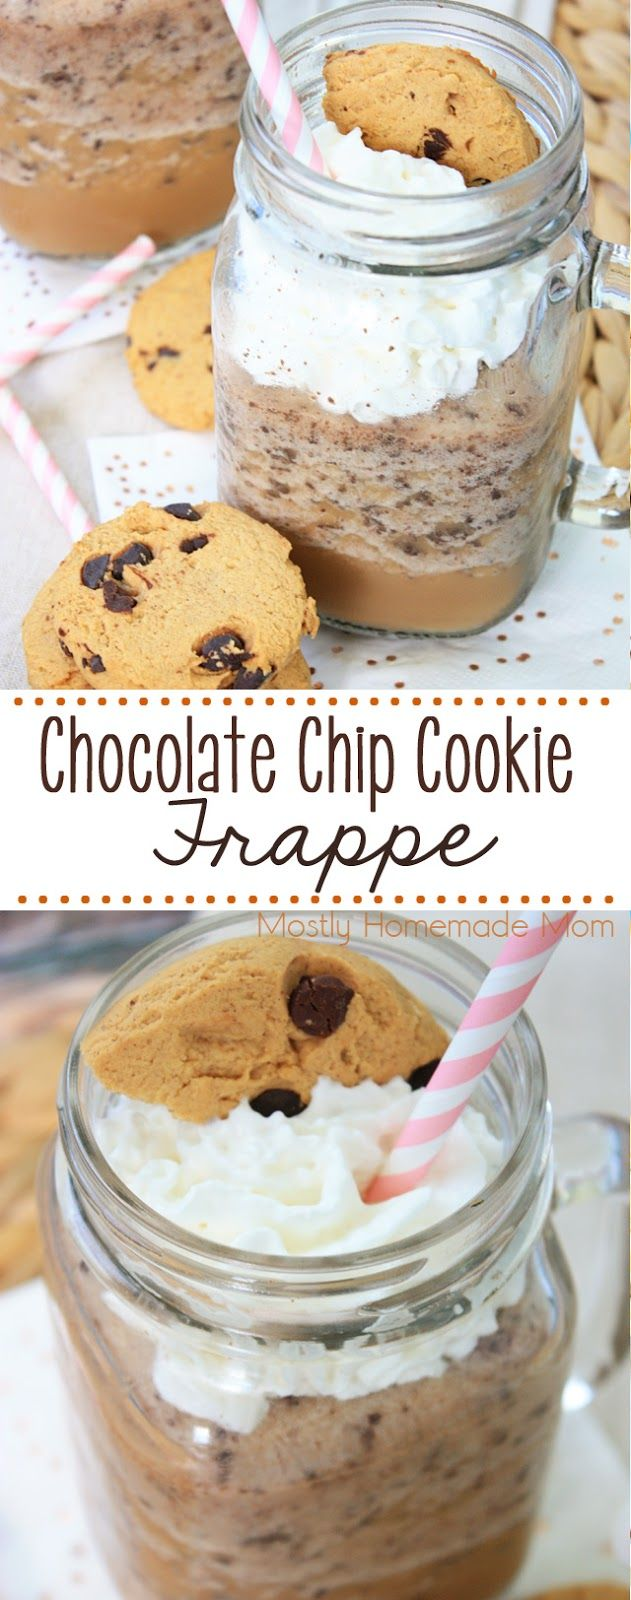 Chocolate Chip Cookie Frappe - coffee, ice, chocolate creamer, chocolate chips, and whipped cream on top - yum!! #FrappeYourWay #ad